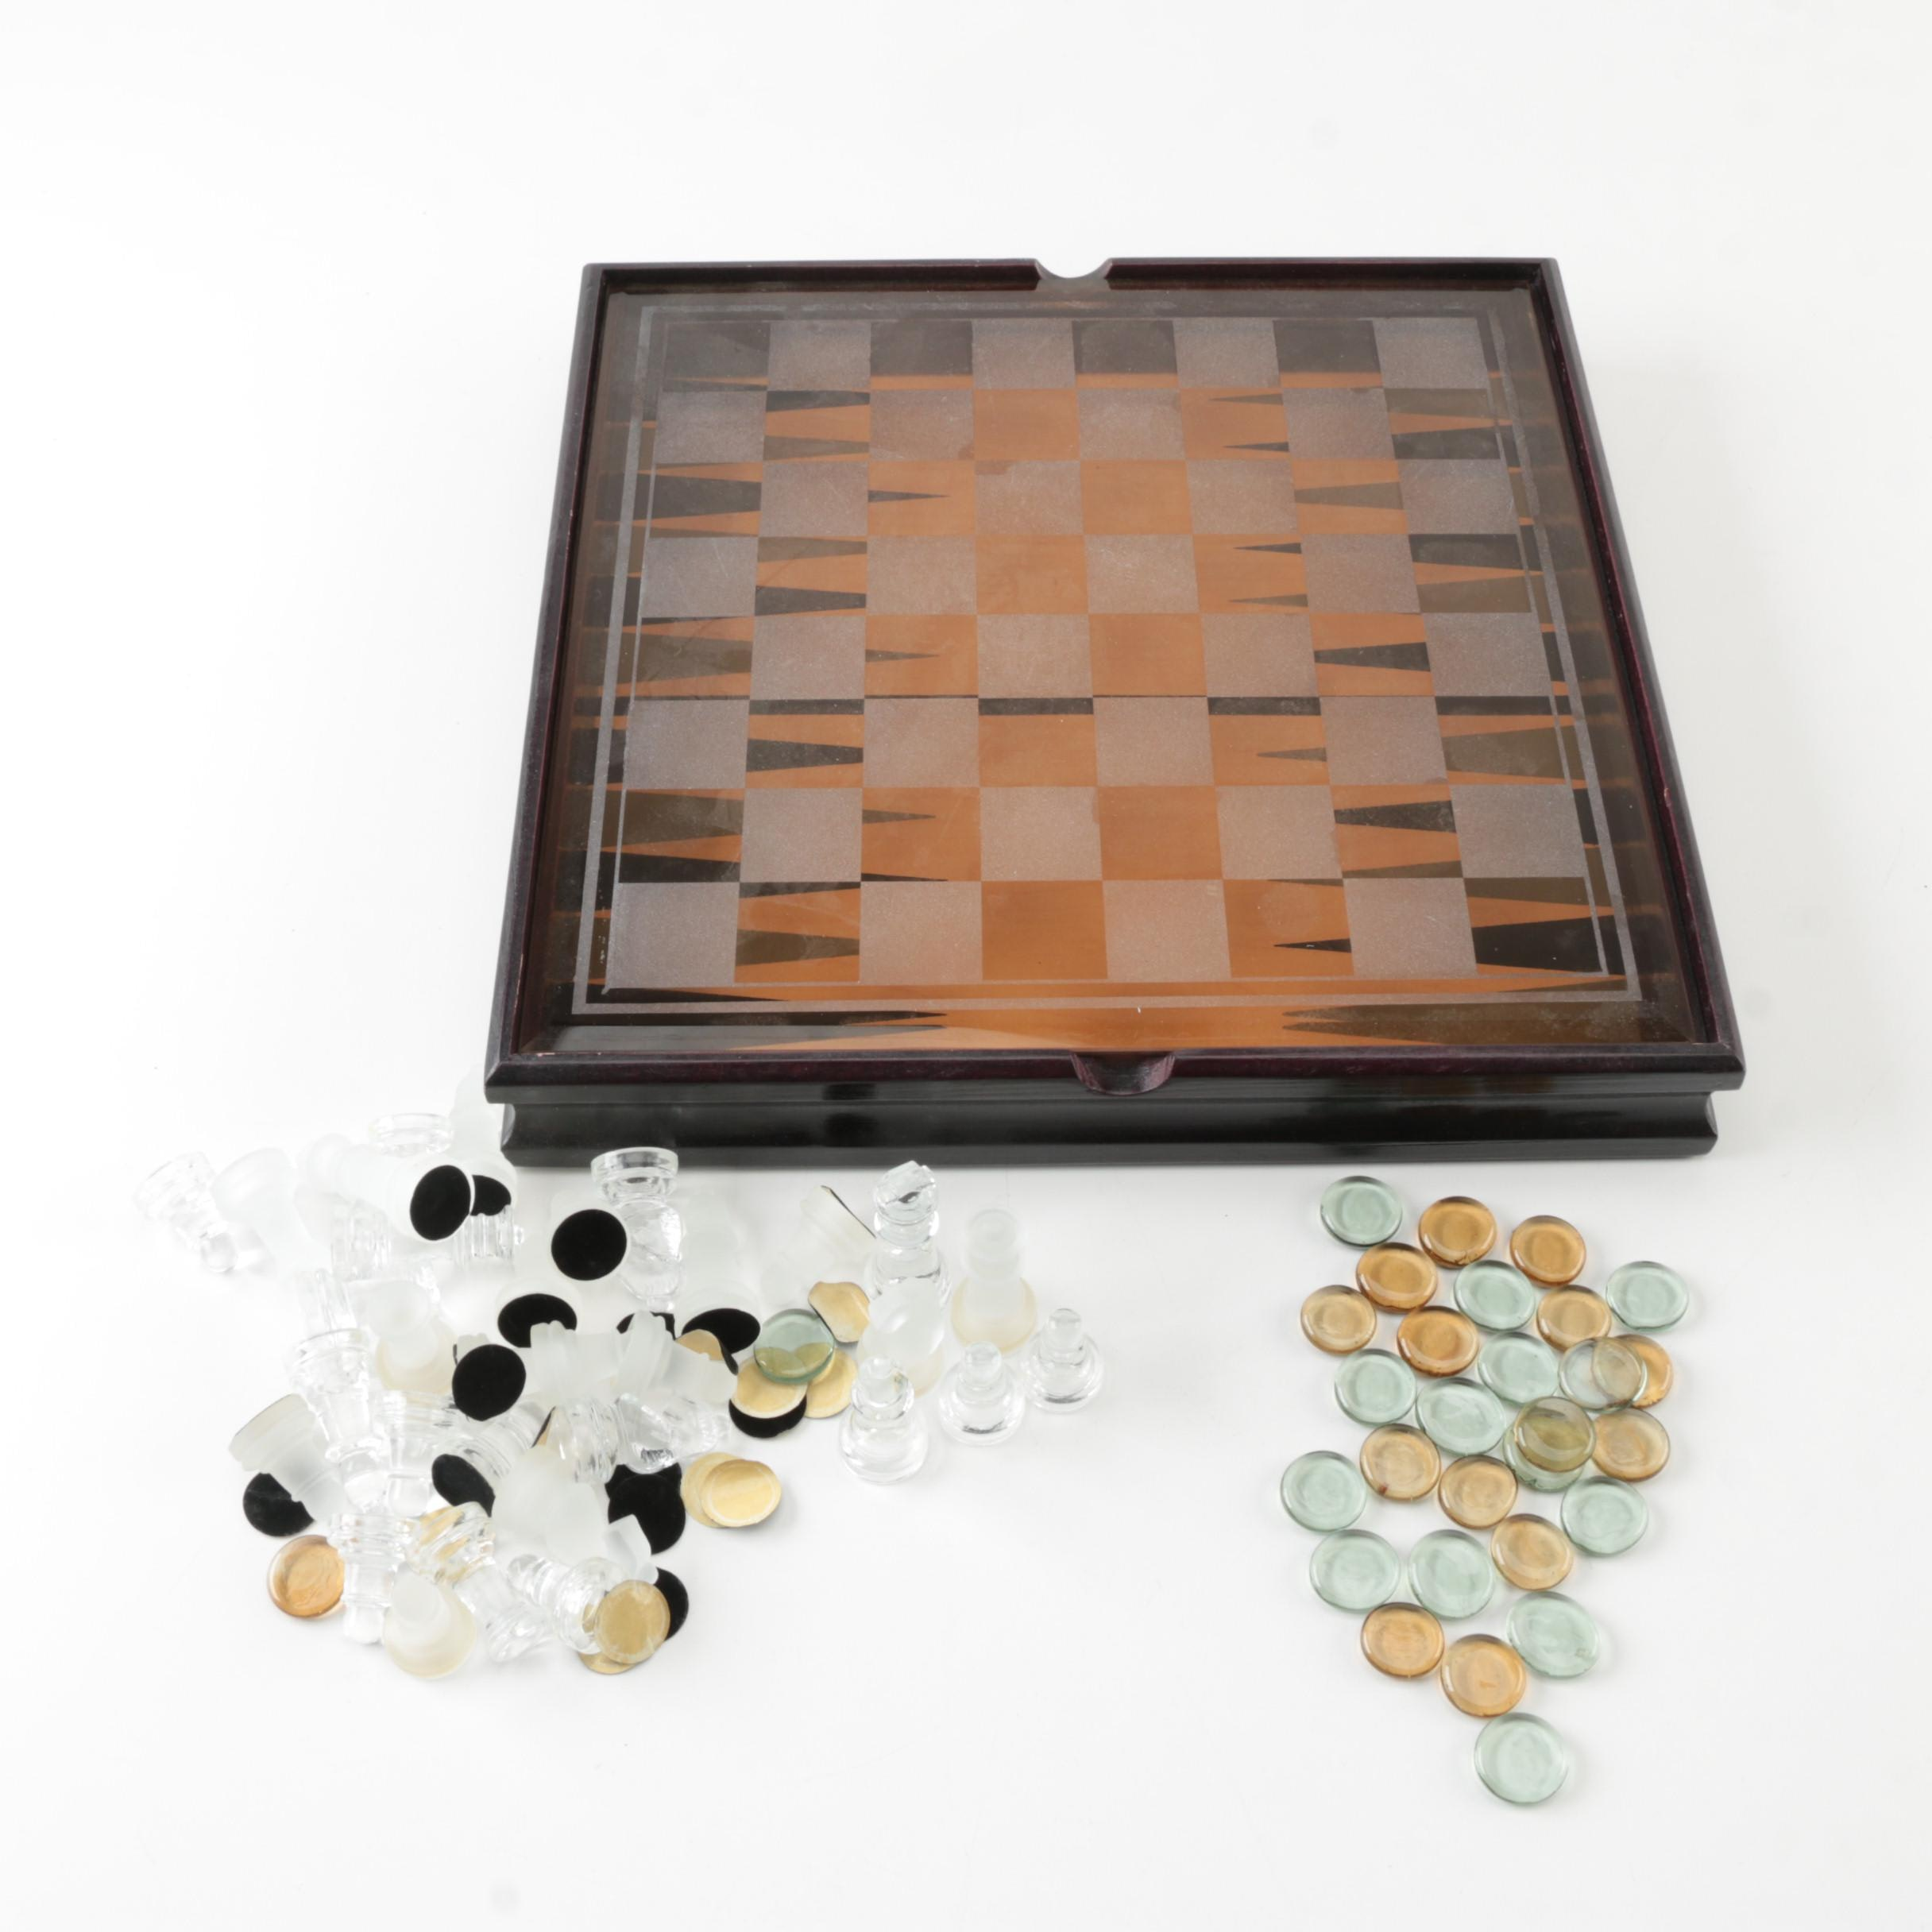 Glass Checkers and Chess Set